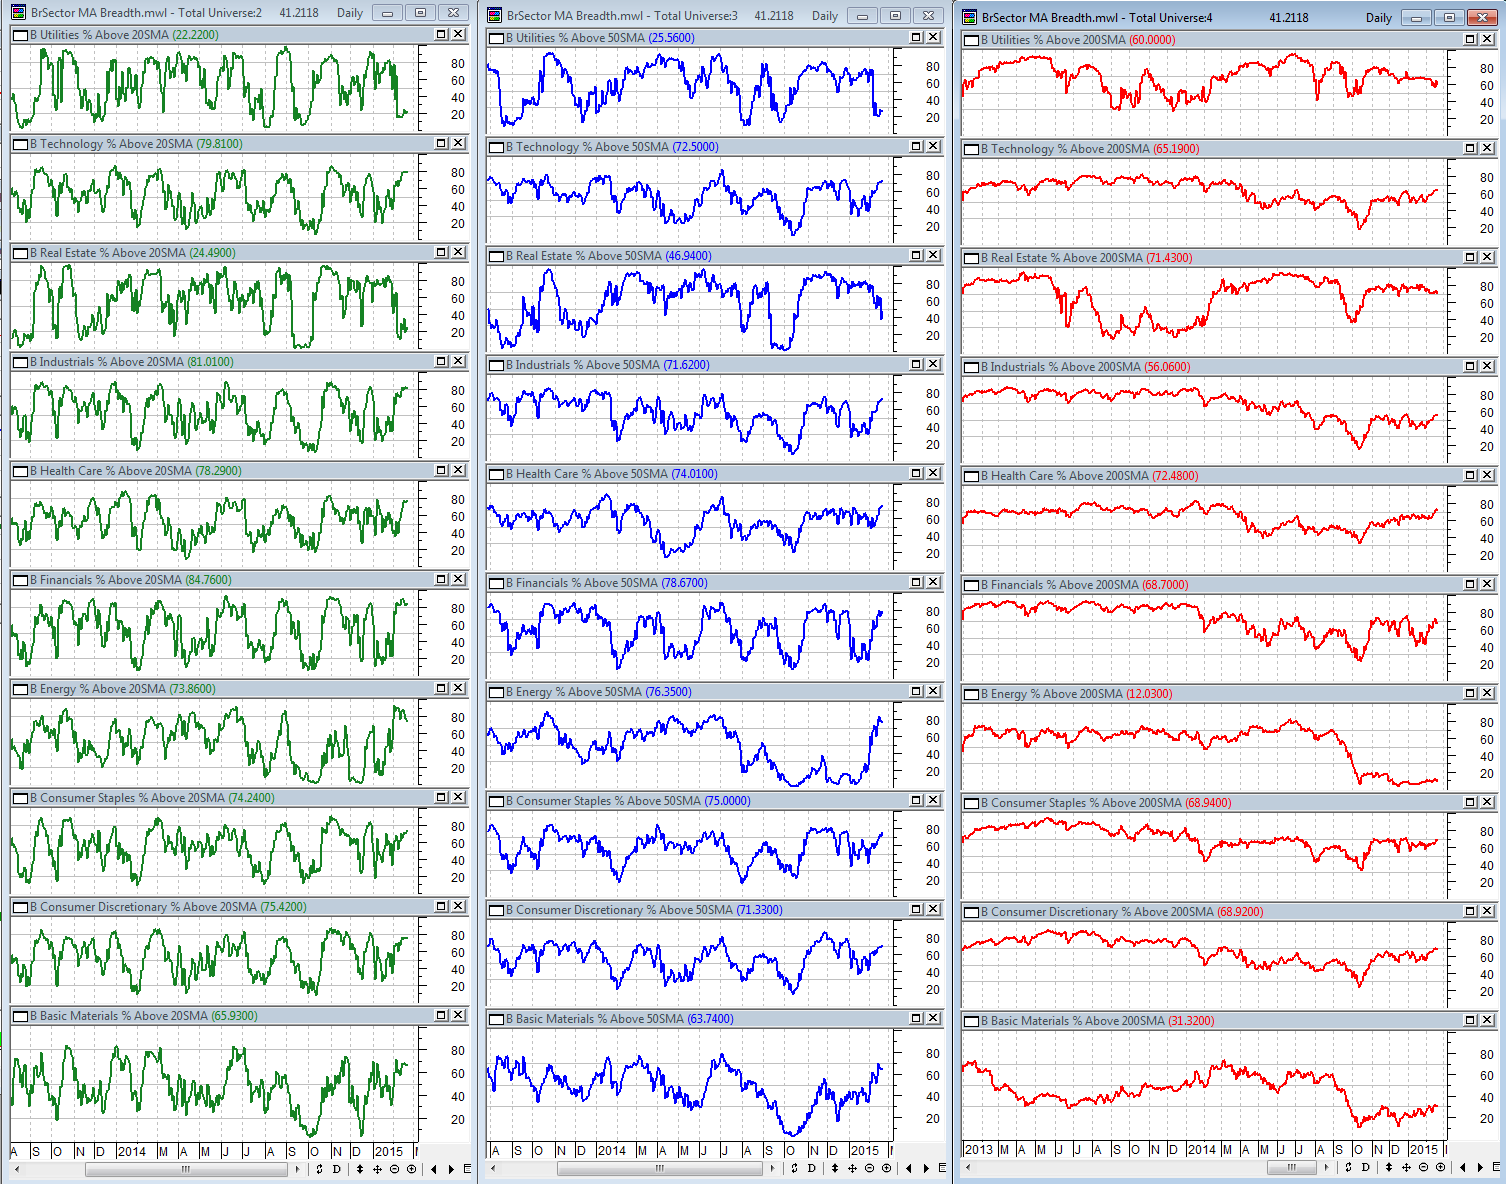 2-20-2015 BSec MA Breadth Dashboard